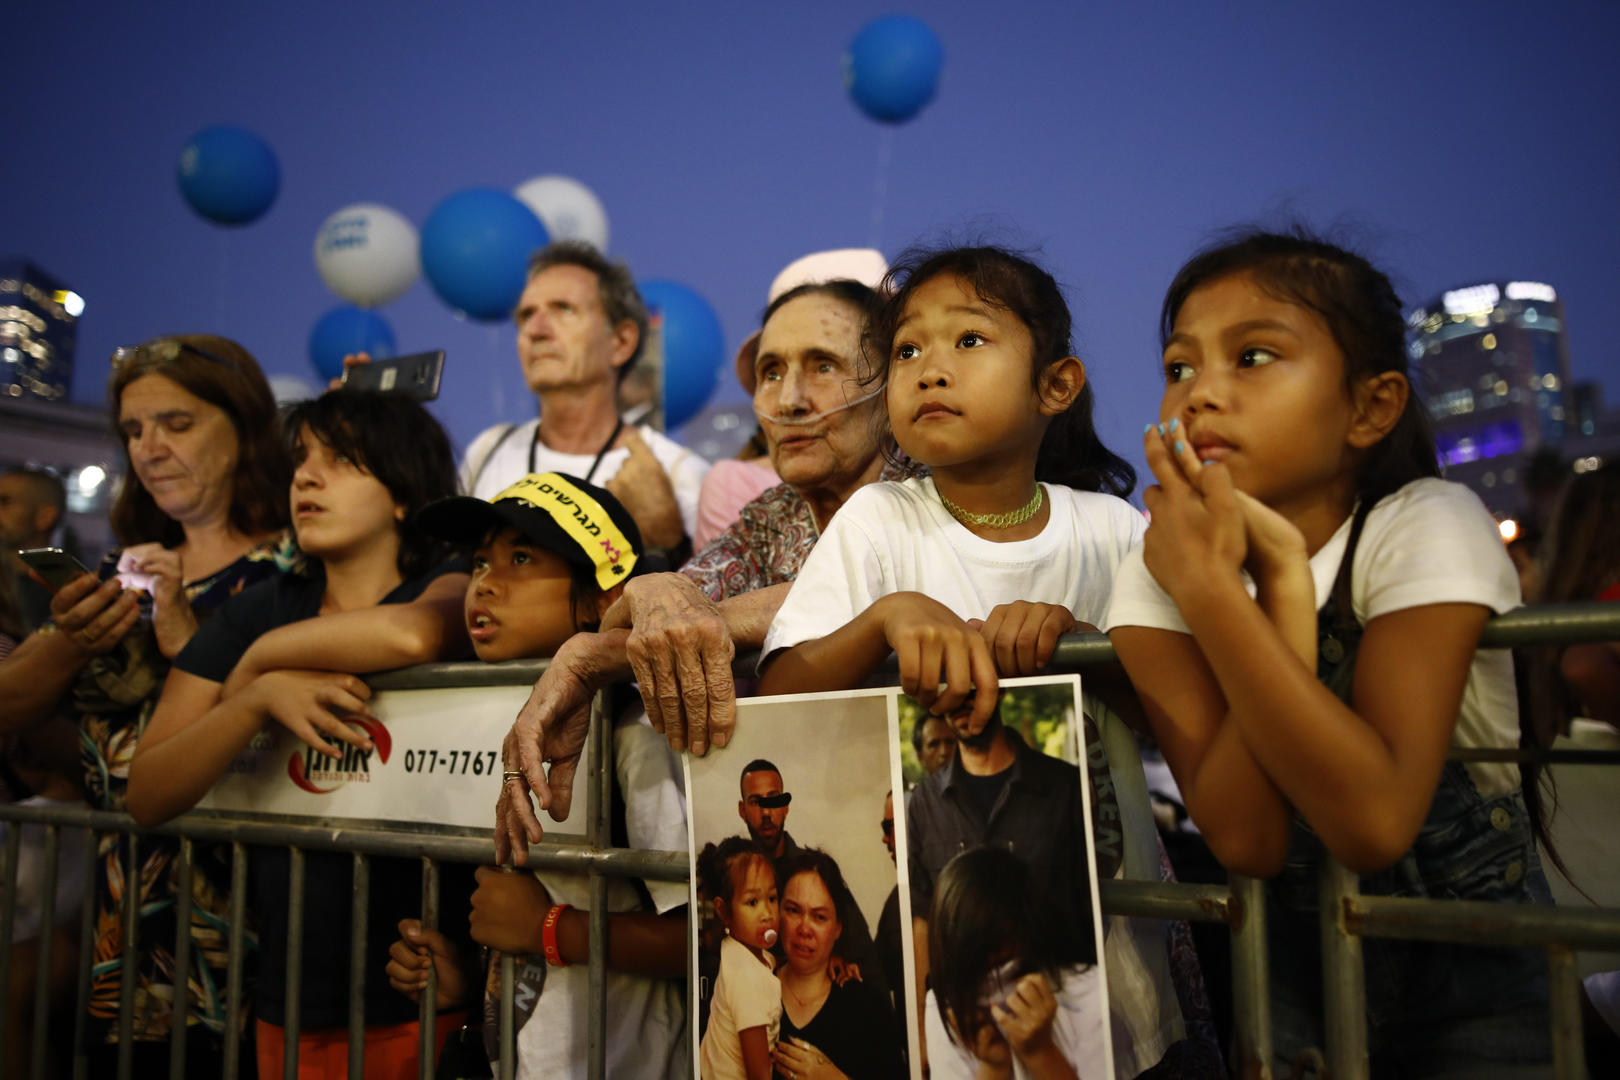 Image: People attend a rally in Tel Aviv on Aug. 6 to protest the deportations of Filipino workers and their children from Israel. (Photo: Corrina Kern)